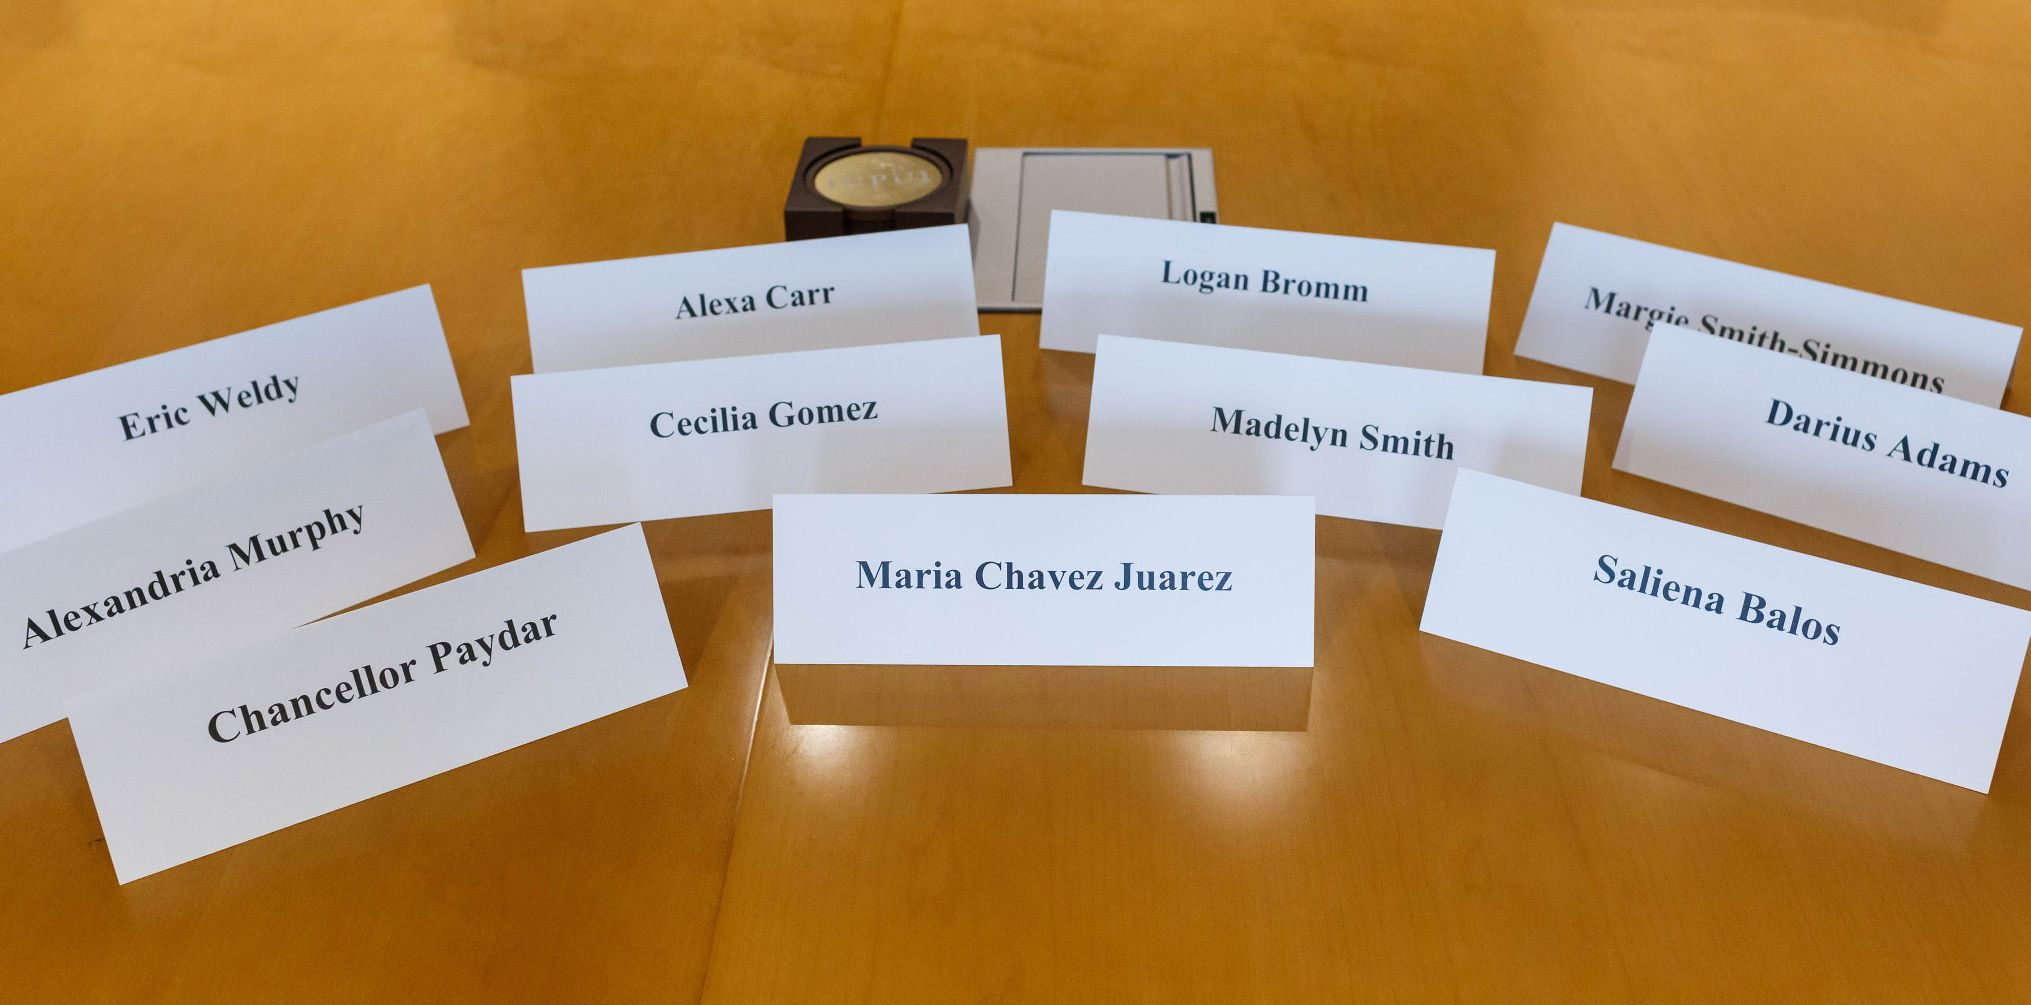 Name tags of members of the Chancellor's Student Advisory Board are organized on a table.